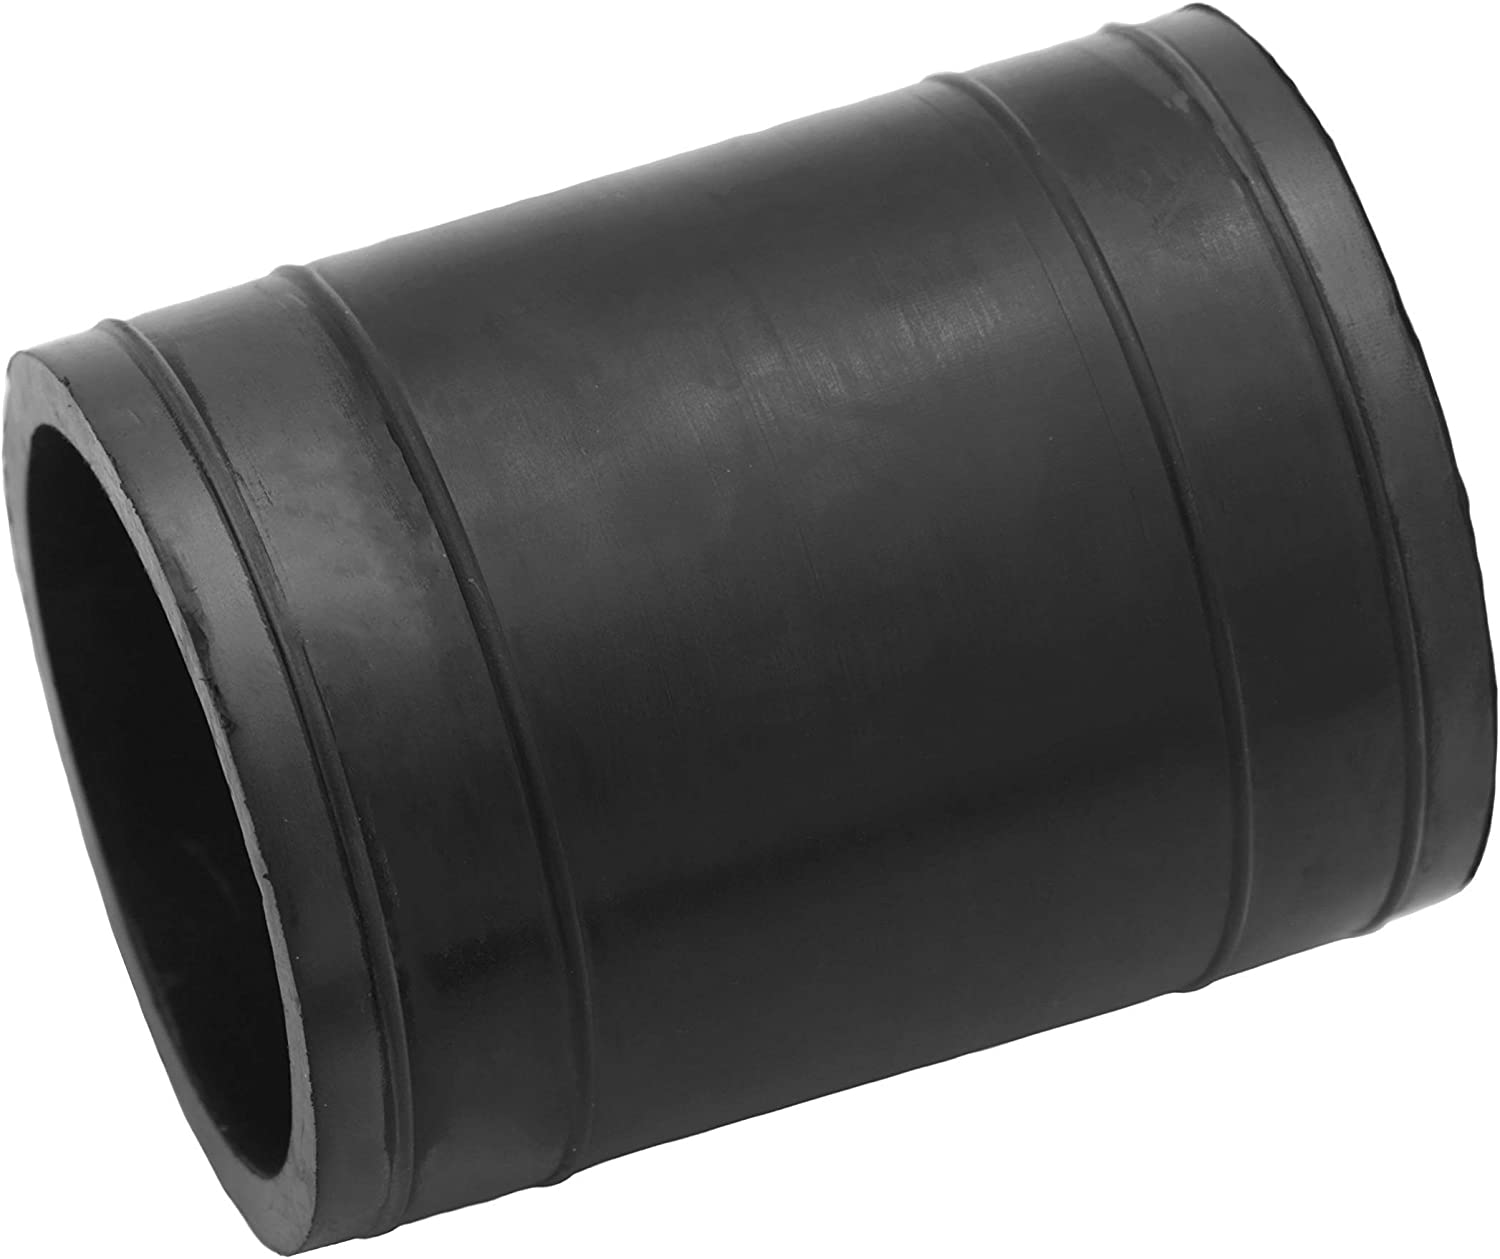 2-Pack Rubber Coupling Hose excellence for Solar Heater 1.9 - Pool Indianapolis Mall Panels